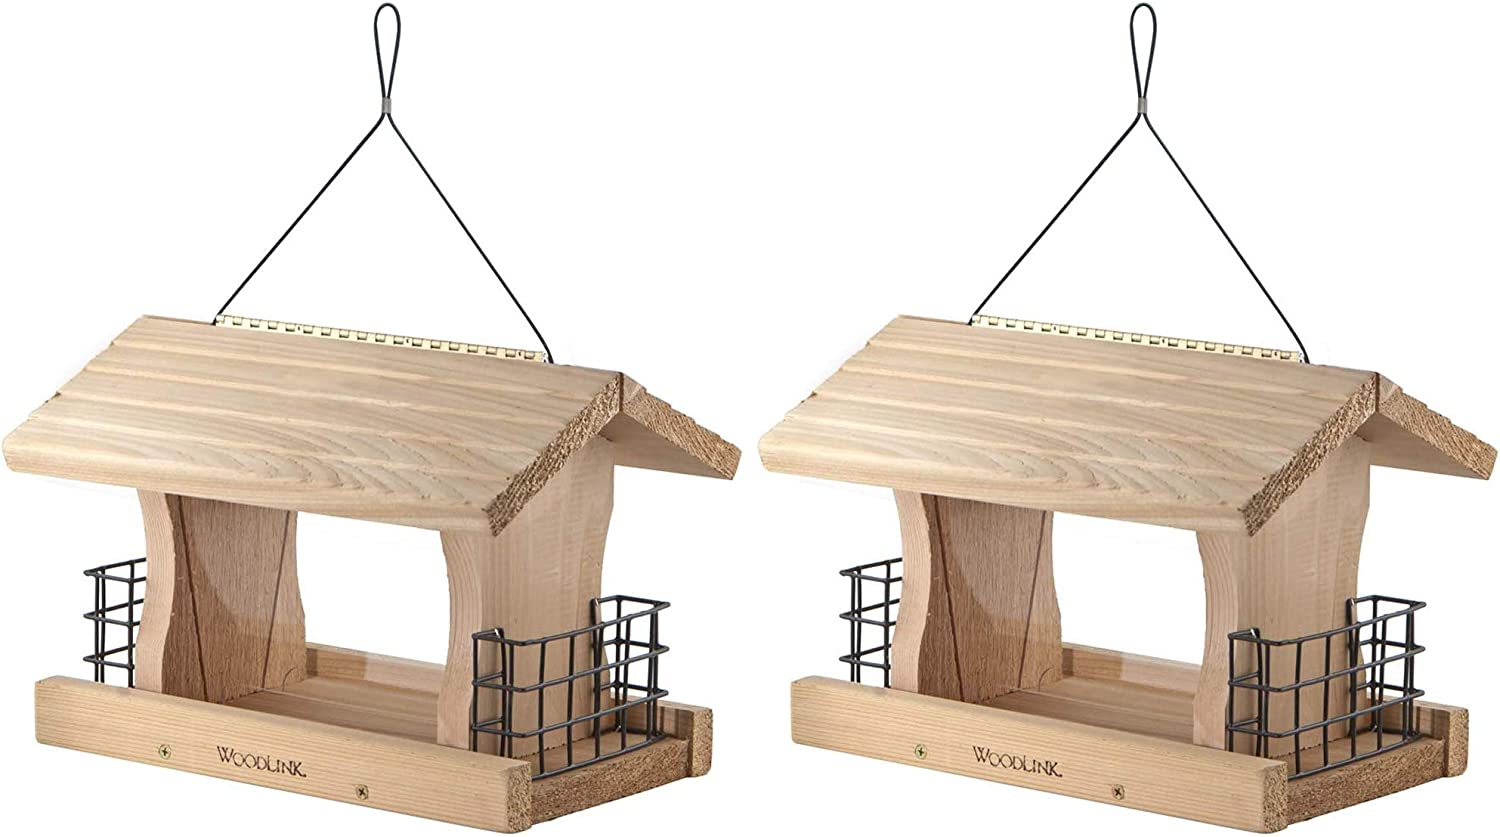 Woodlink Deluxe Cedar Wood Hanging Feeder Super-cheap with Bird Suet Cable Max 51% OFF